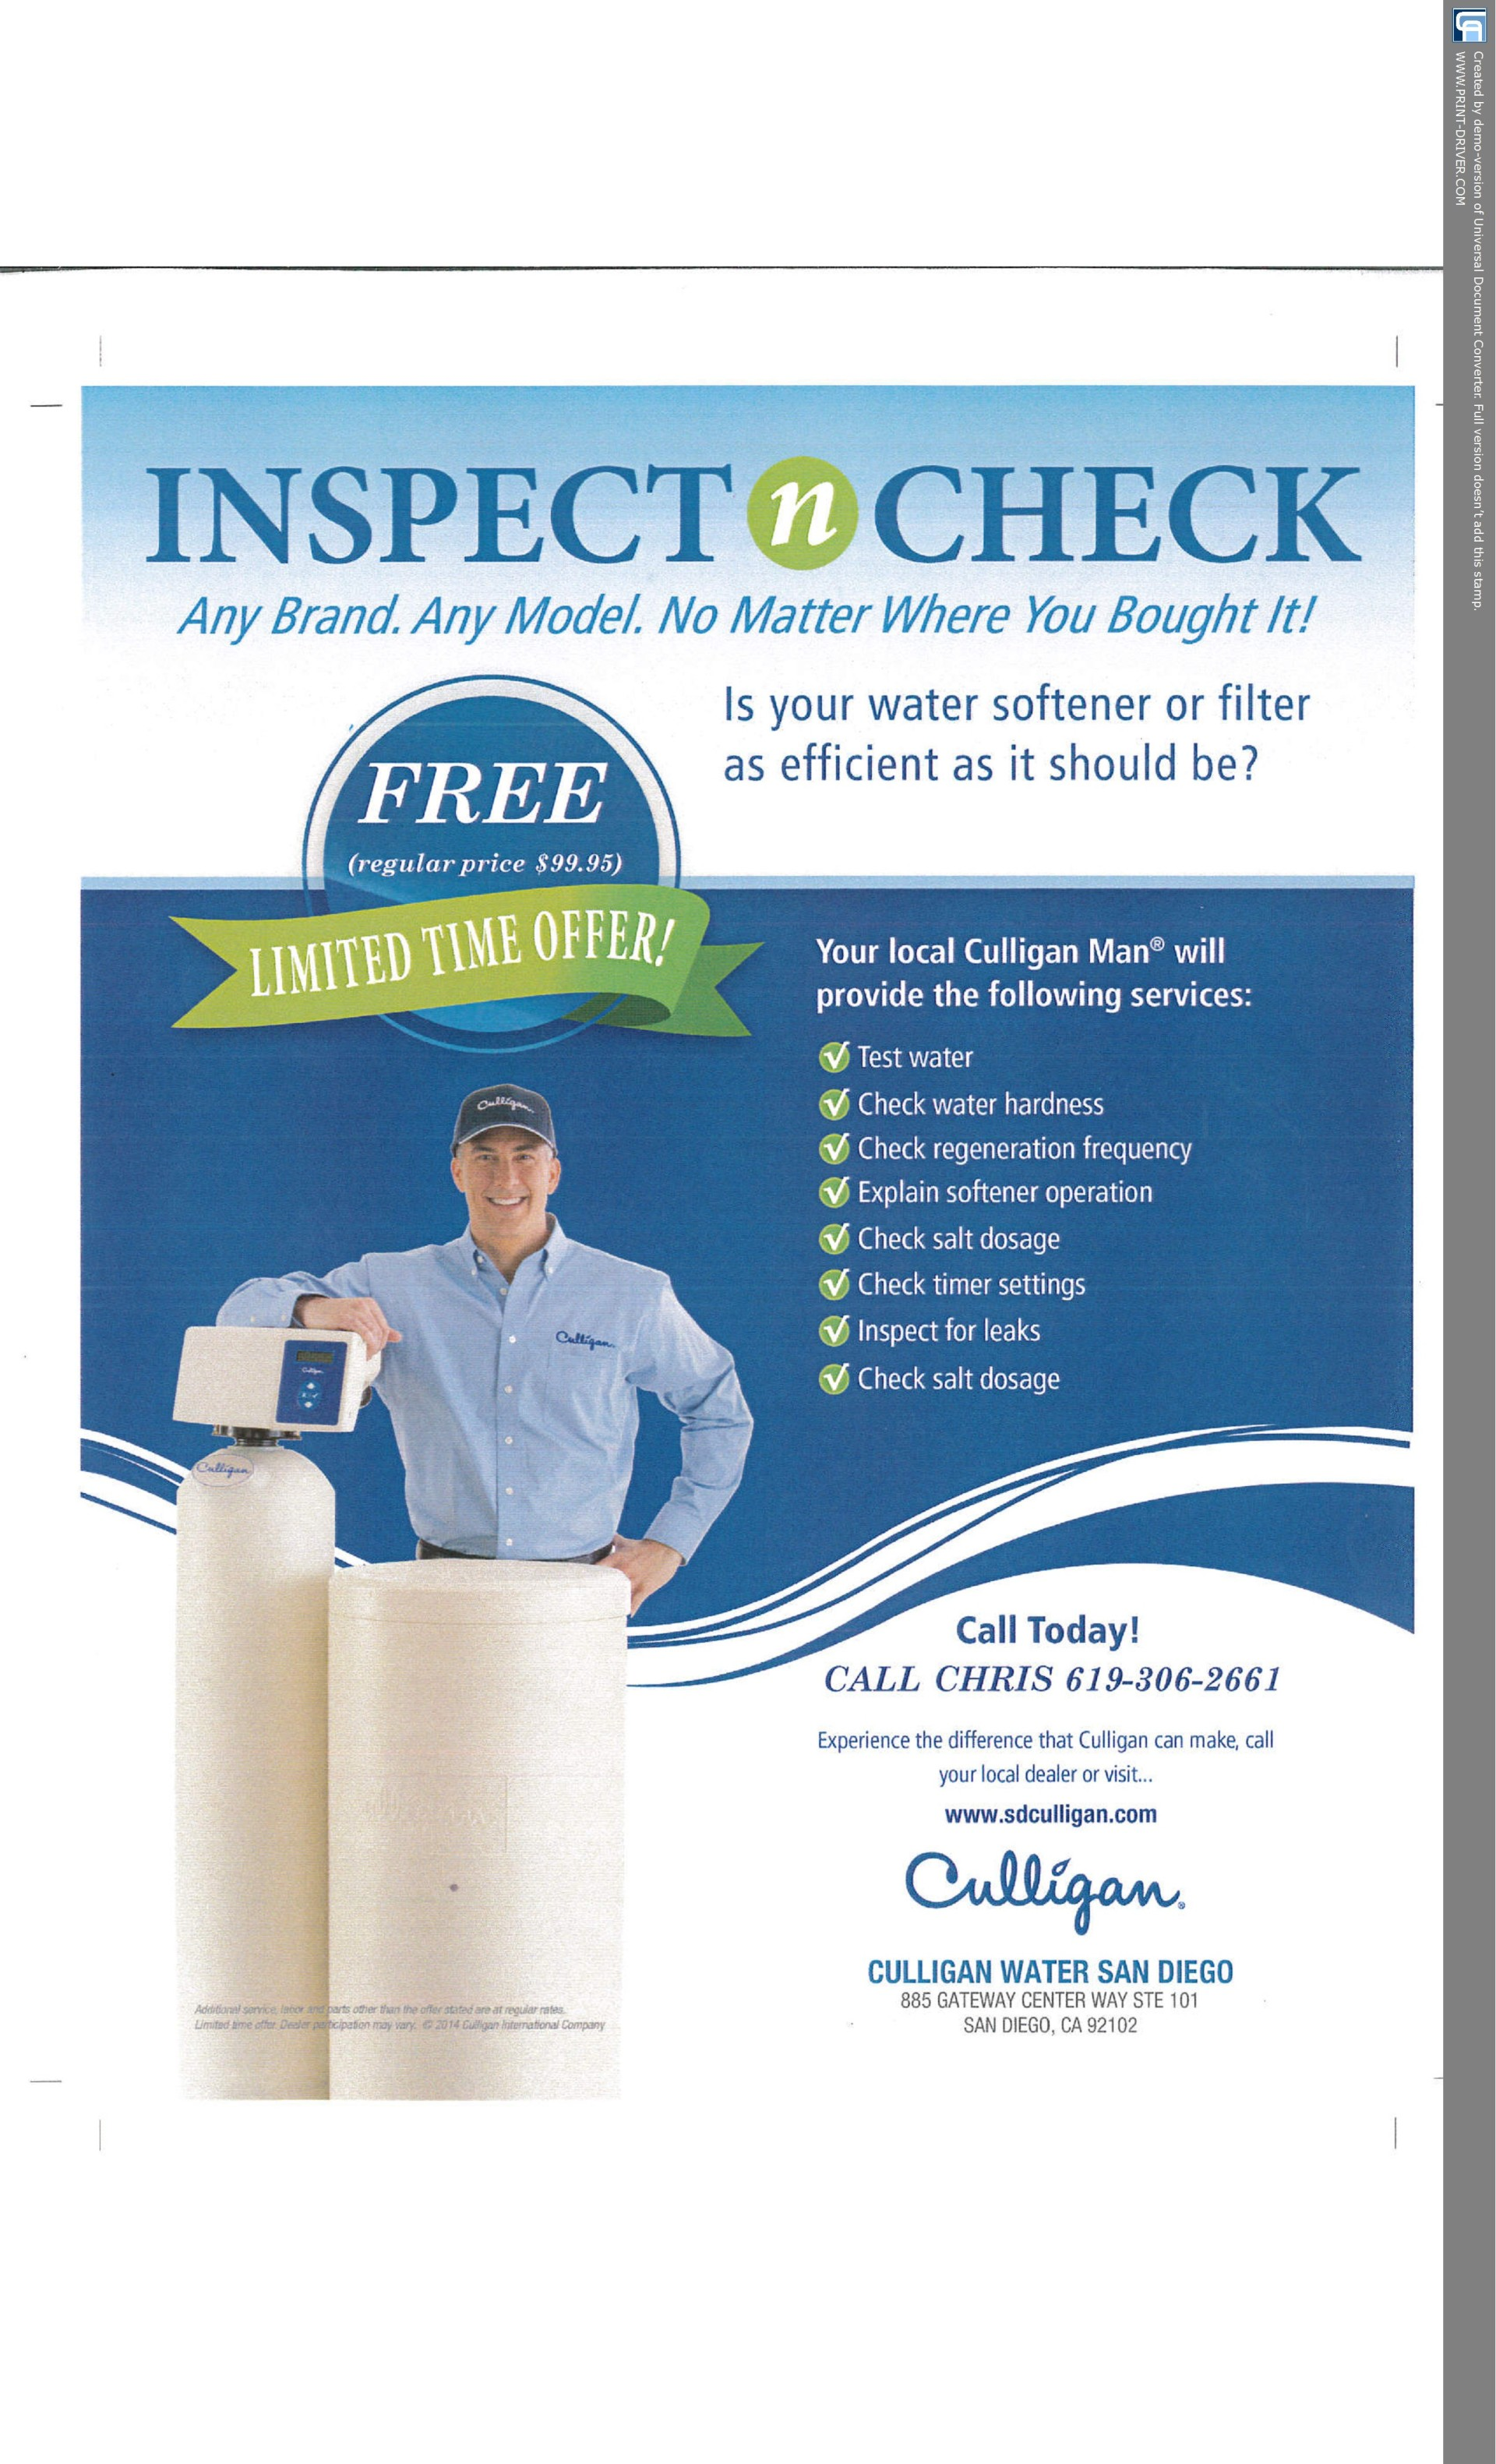 New-Culligan-Chris-w1920.jpg